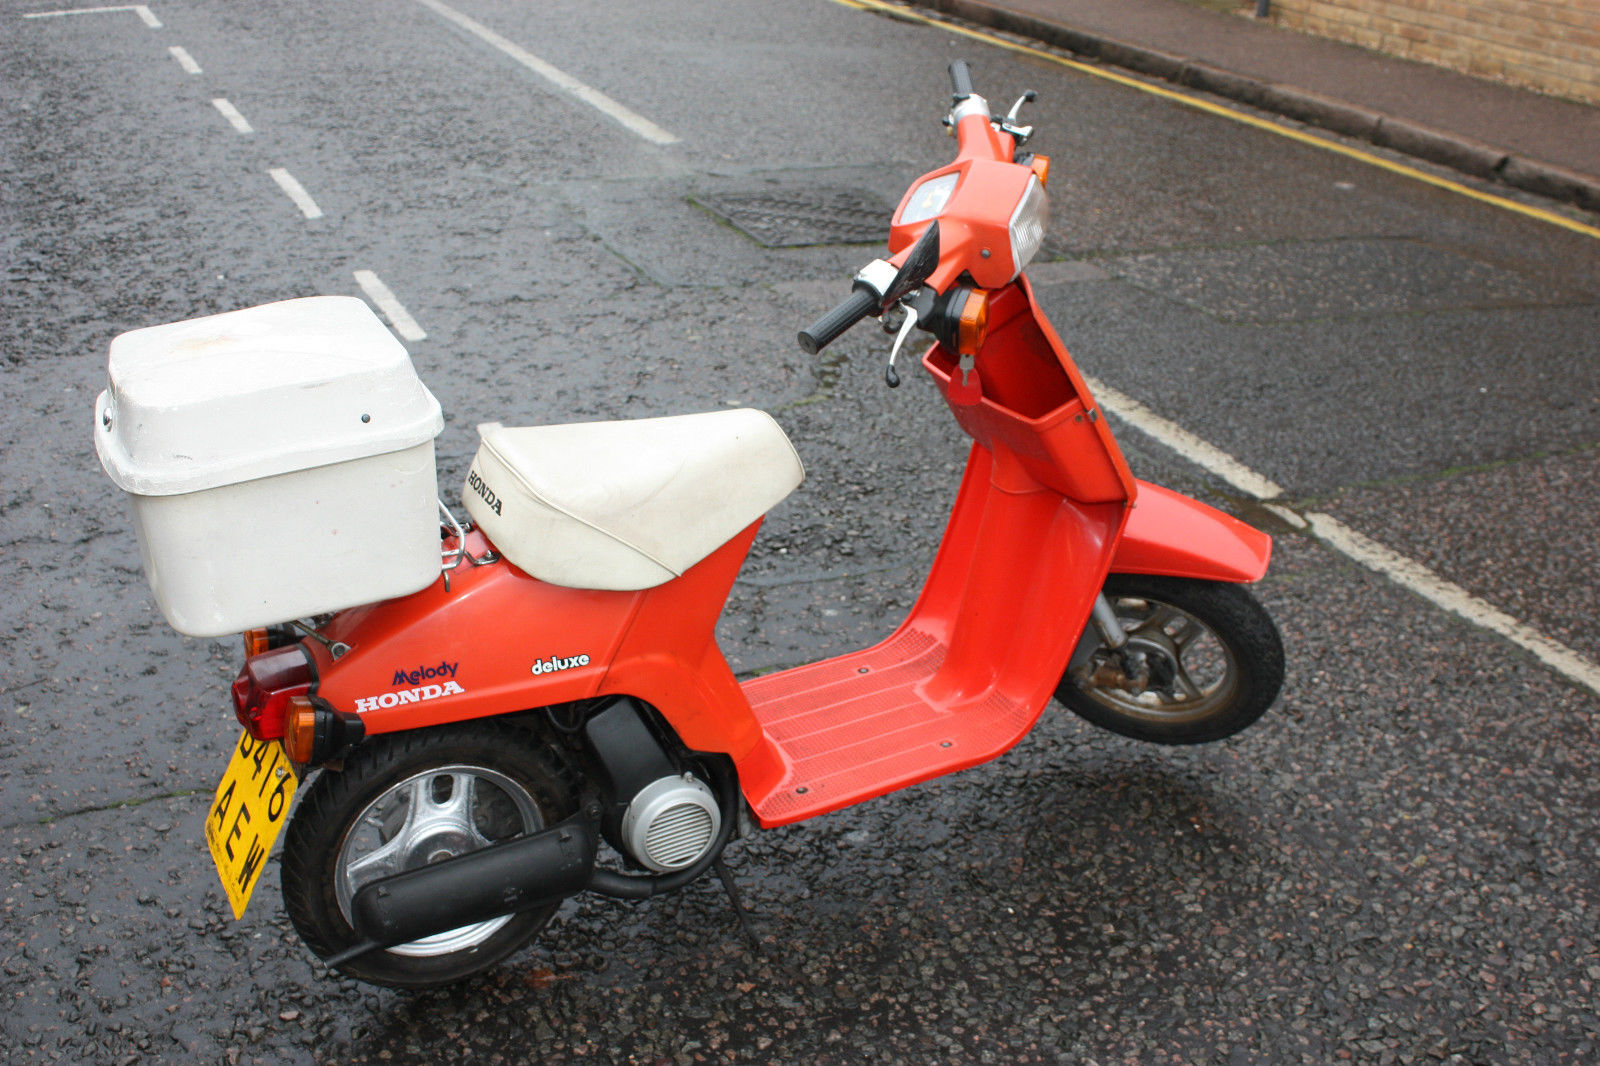 1984 honda ns50msb red melody deluxe classic retro vintage moped scooter. Black Bedroom Furniture Sets. Home Design Ideas